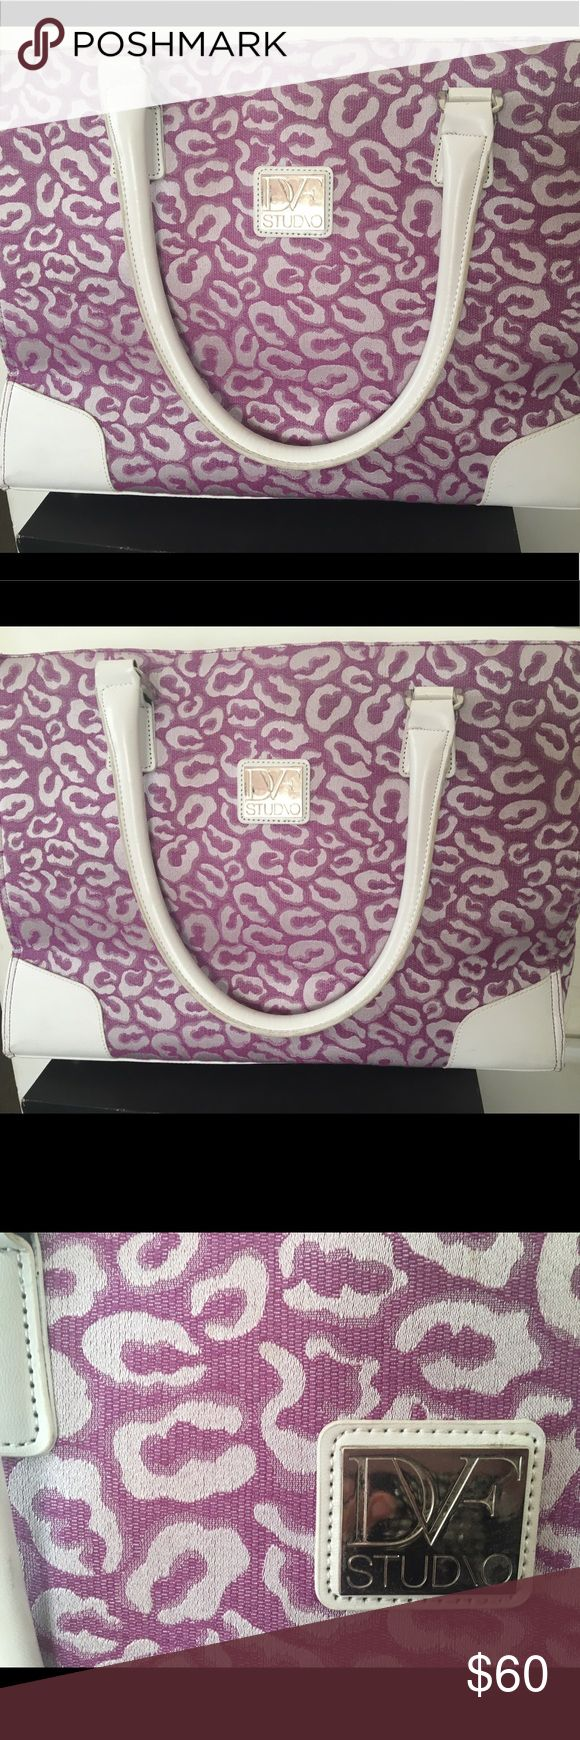 DVF Studio Large Purple Tote Bag With White Straps DVF Studio Large Purple Tote Shopping Bag With White Straps DVF Bags Totes